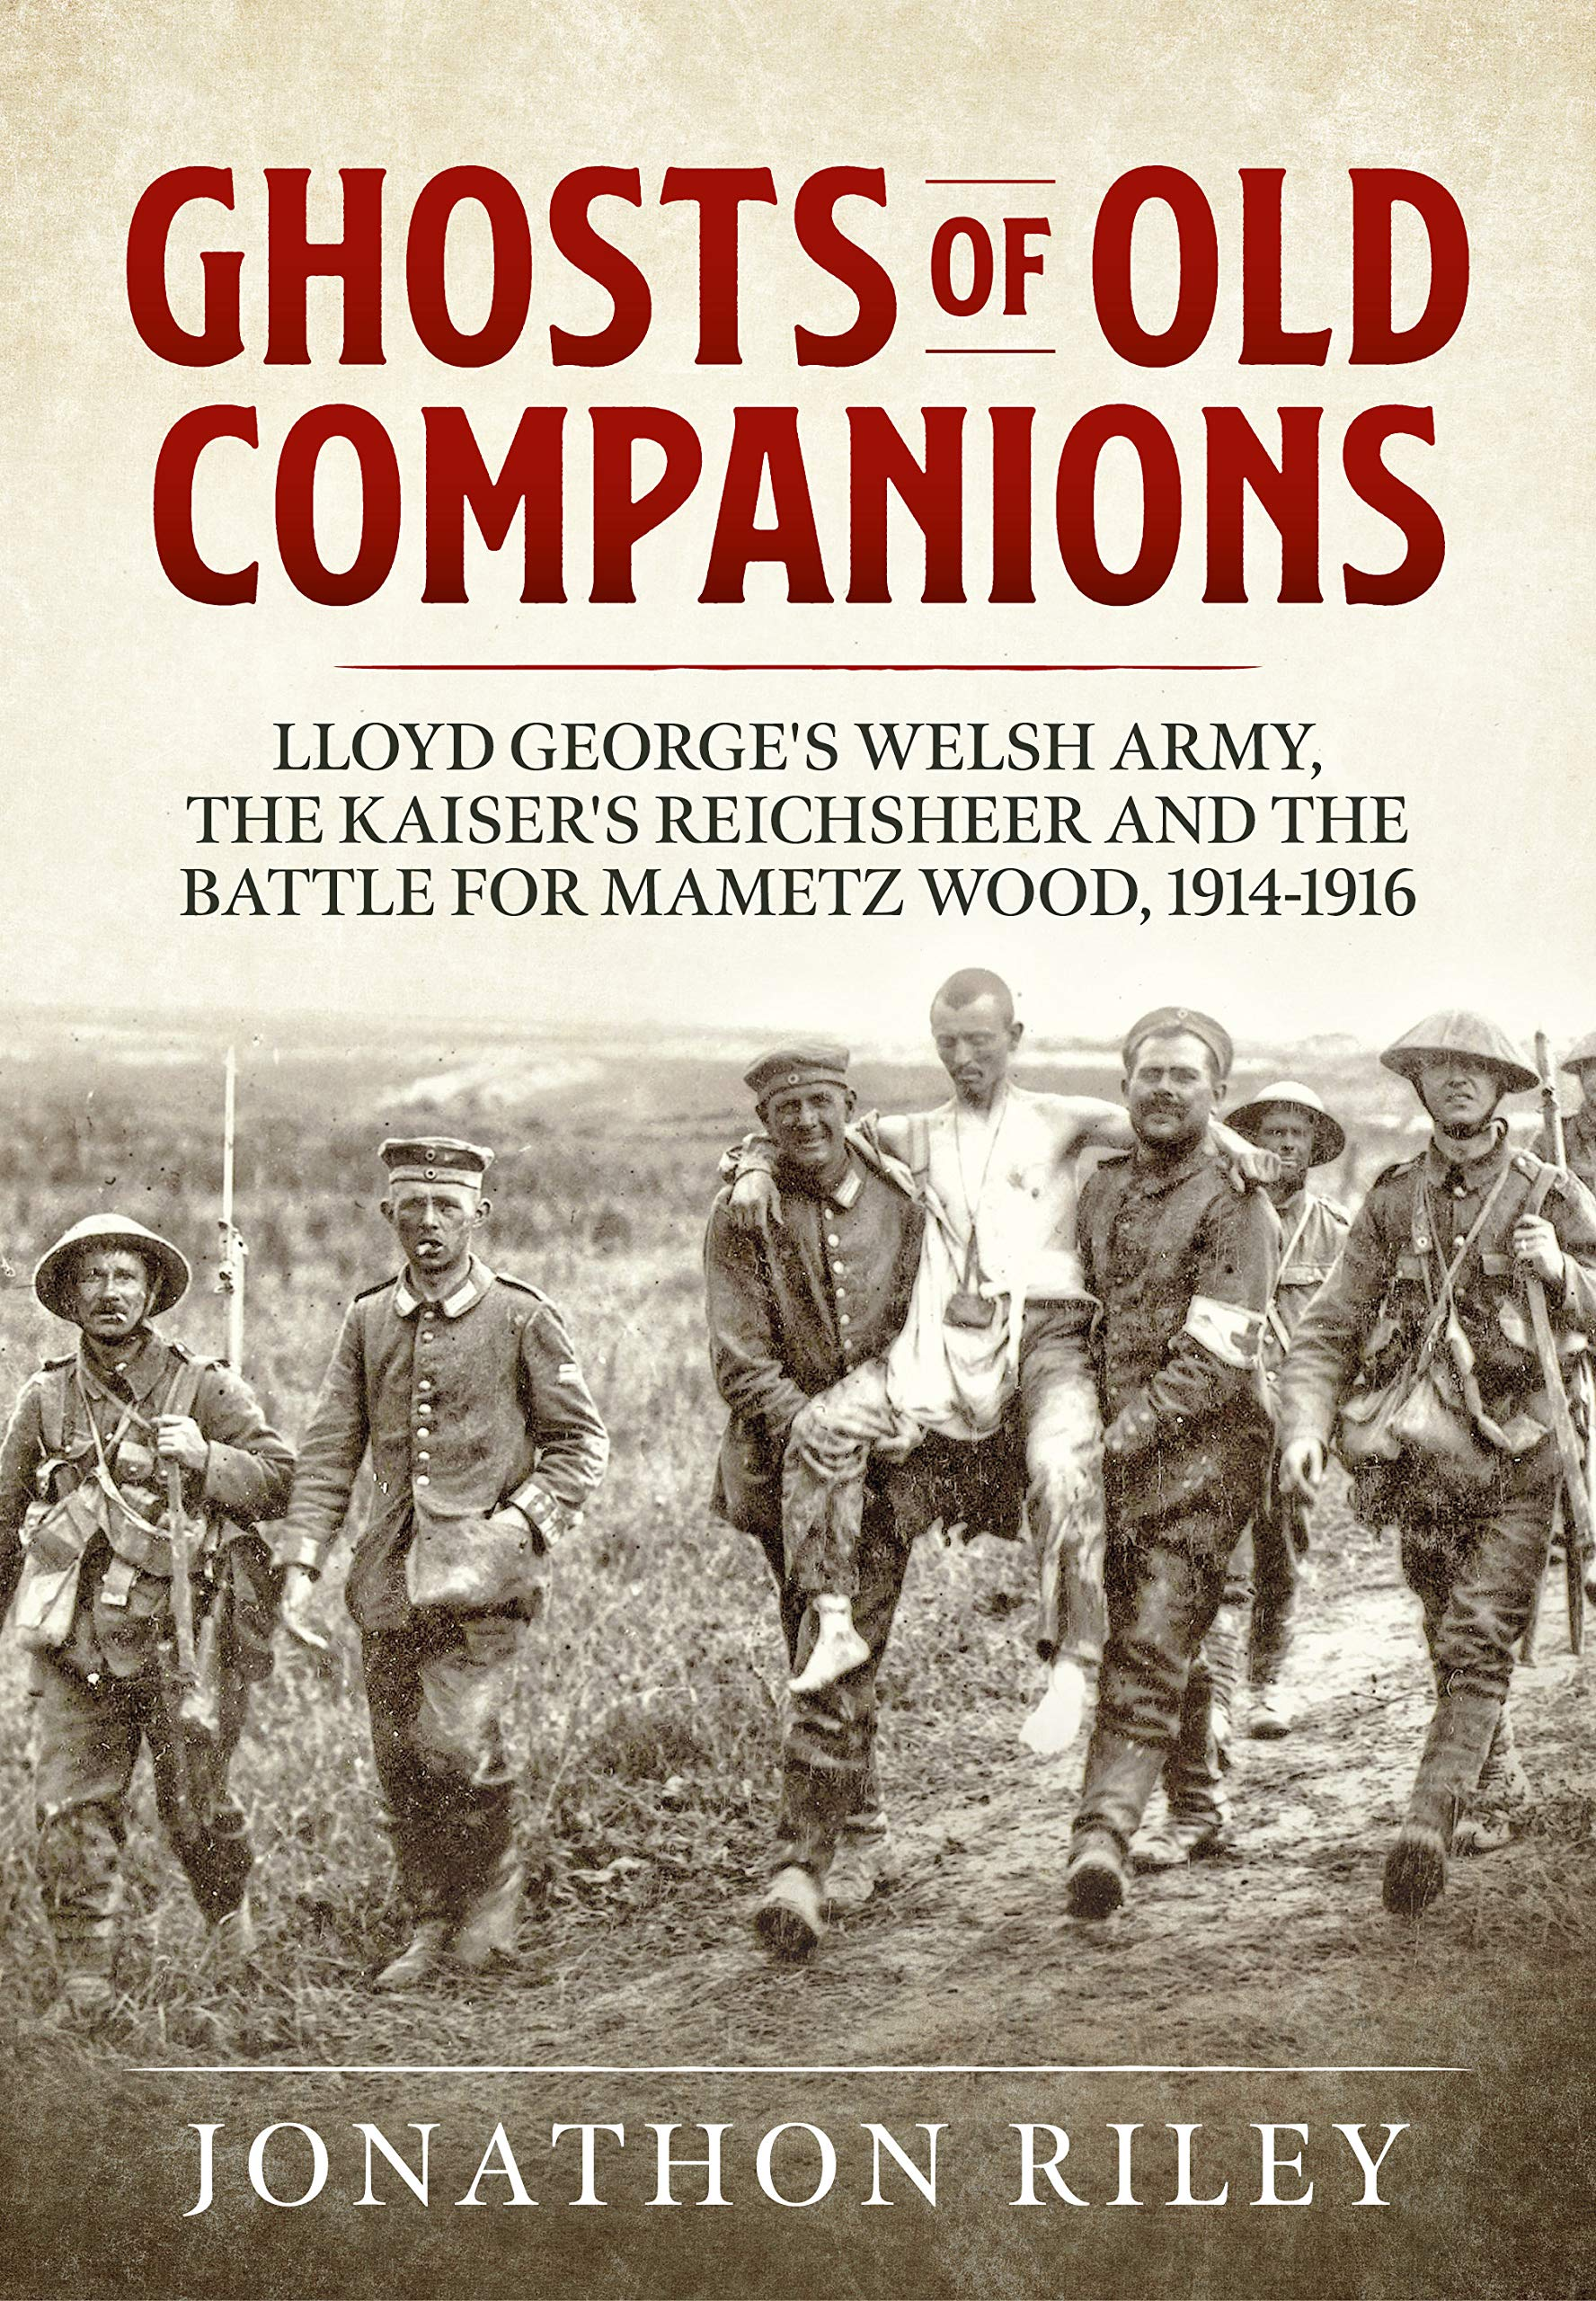 Ghosts Of Old Companions  Lloyd George's Welsh Army The Kaiser's Reichsheer And The Battle For Mametz Wood 1914 1916